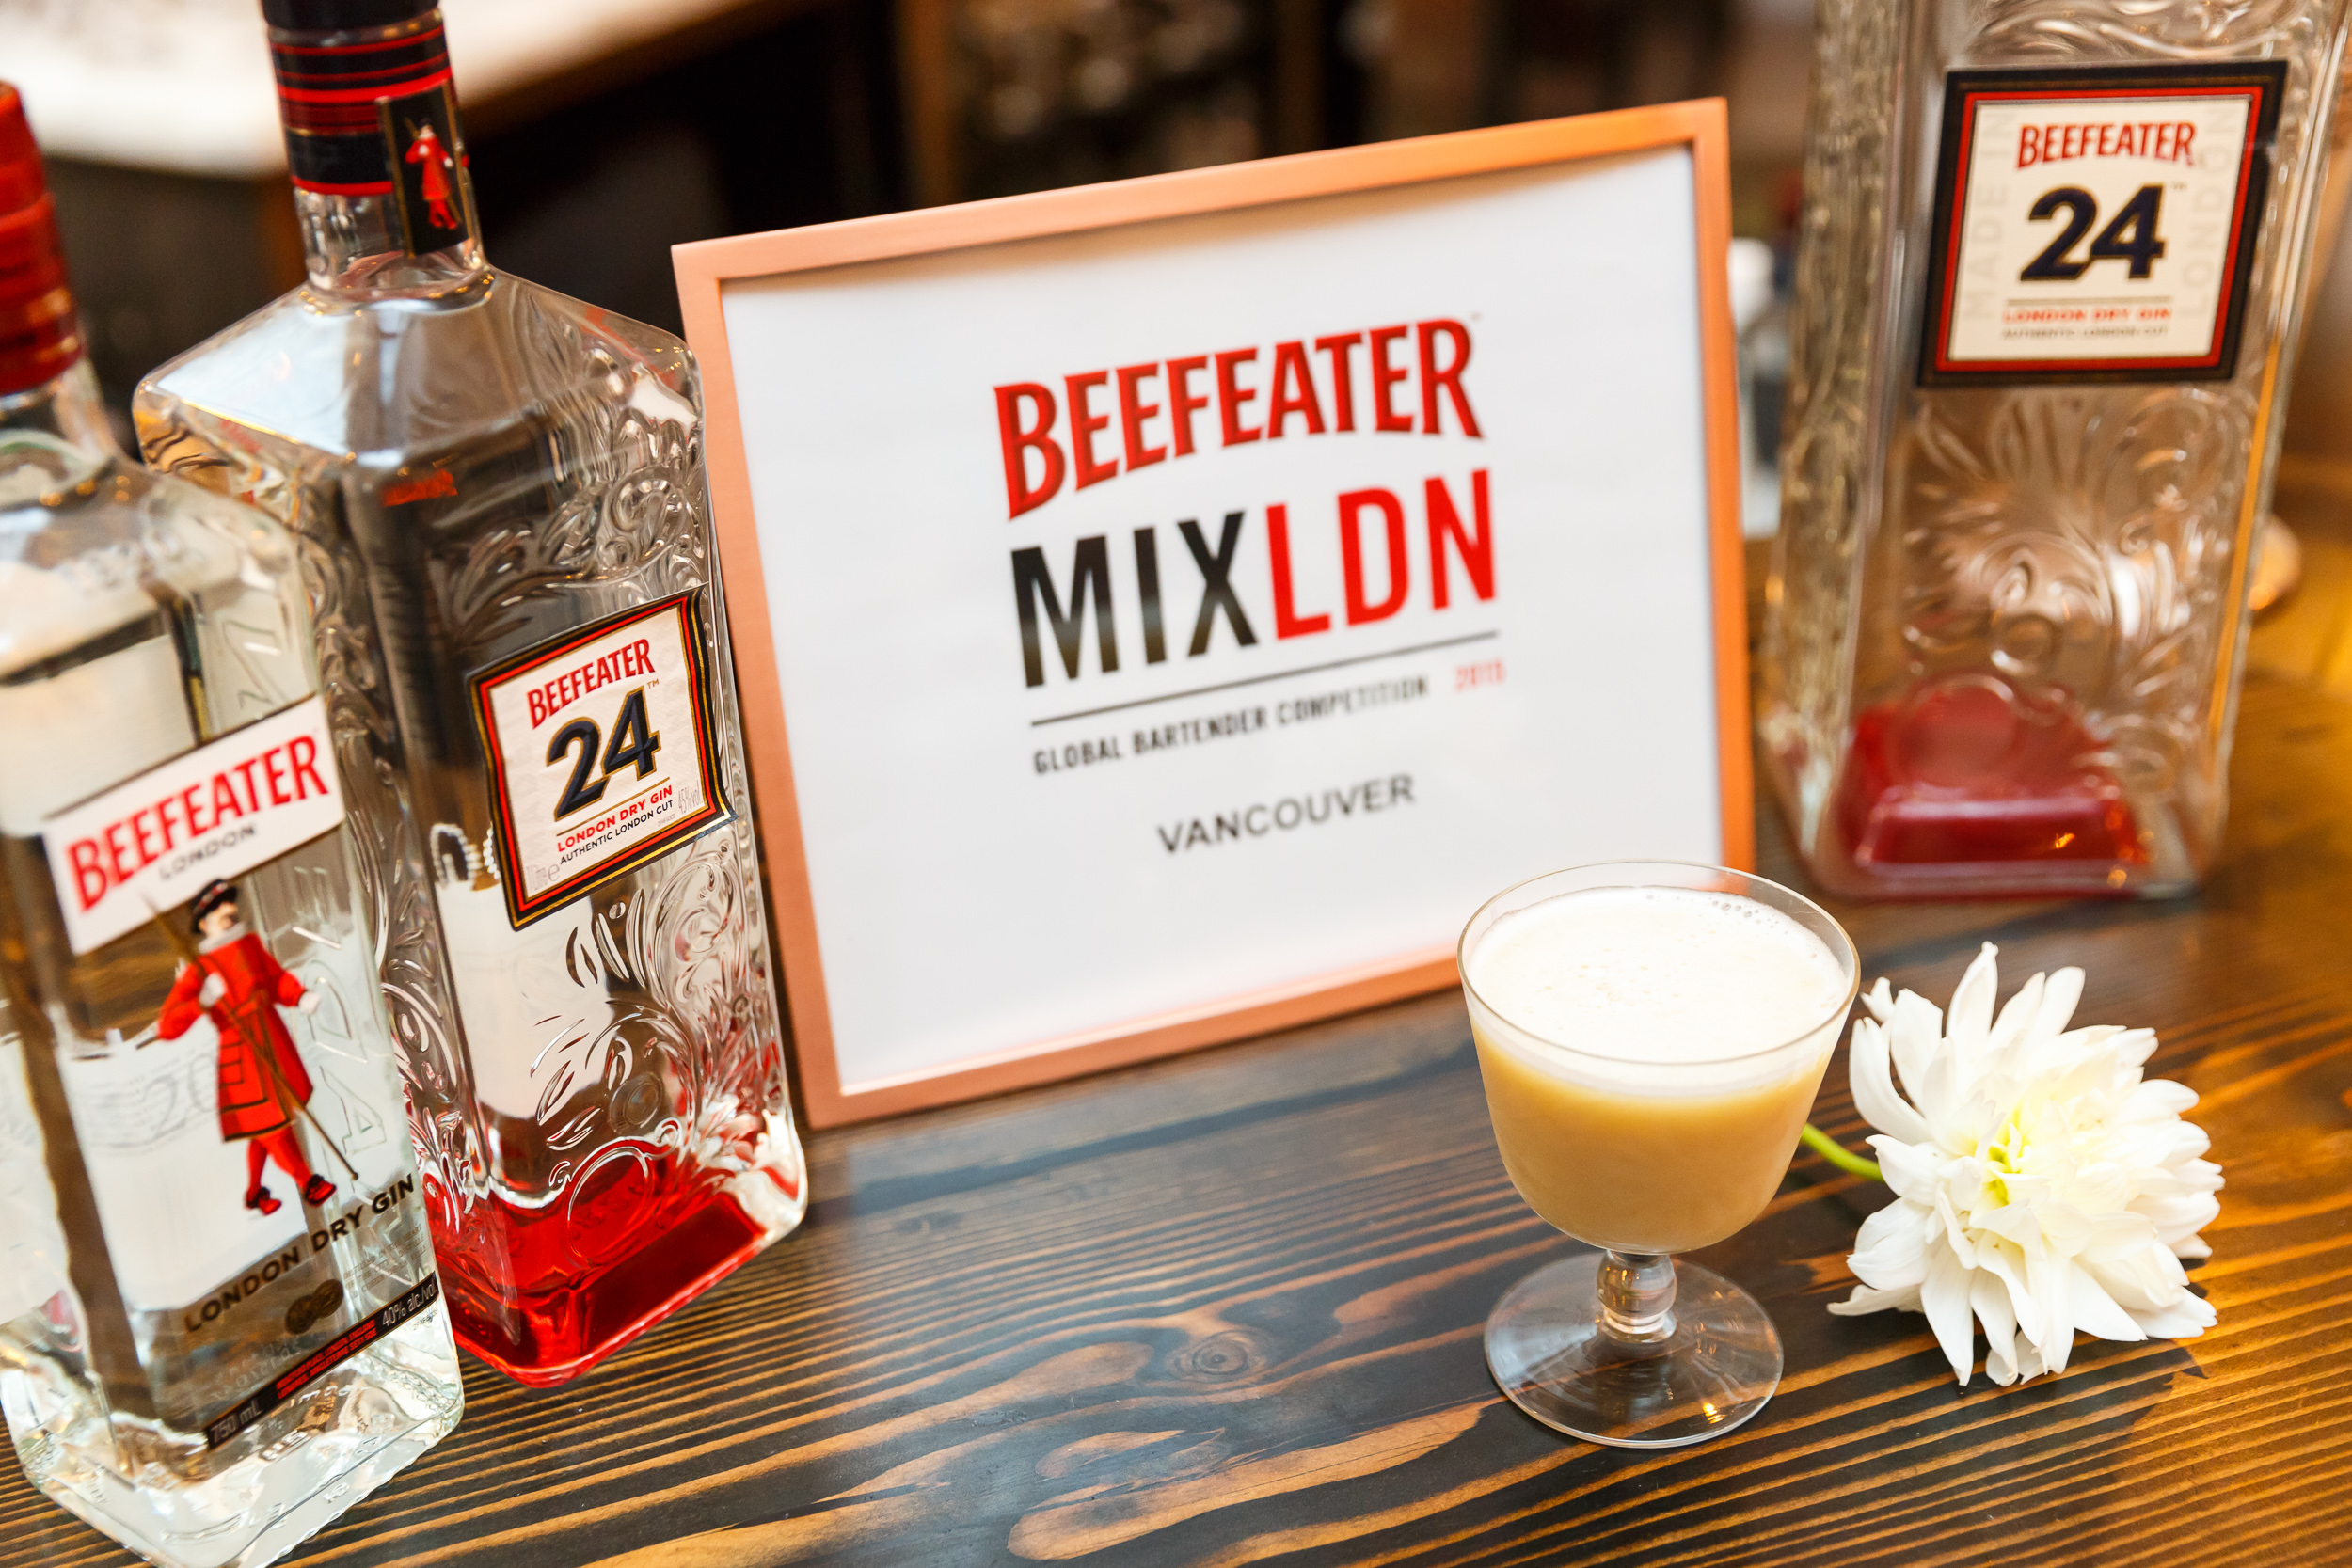 Beefeater-MIXLDN-photo-5.jpg